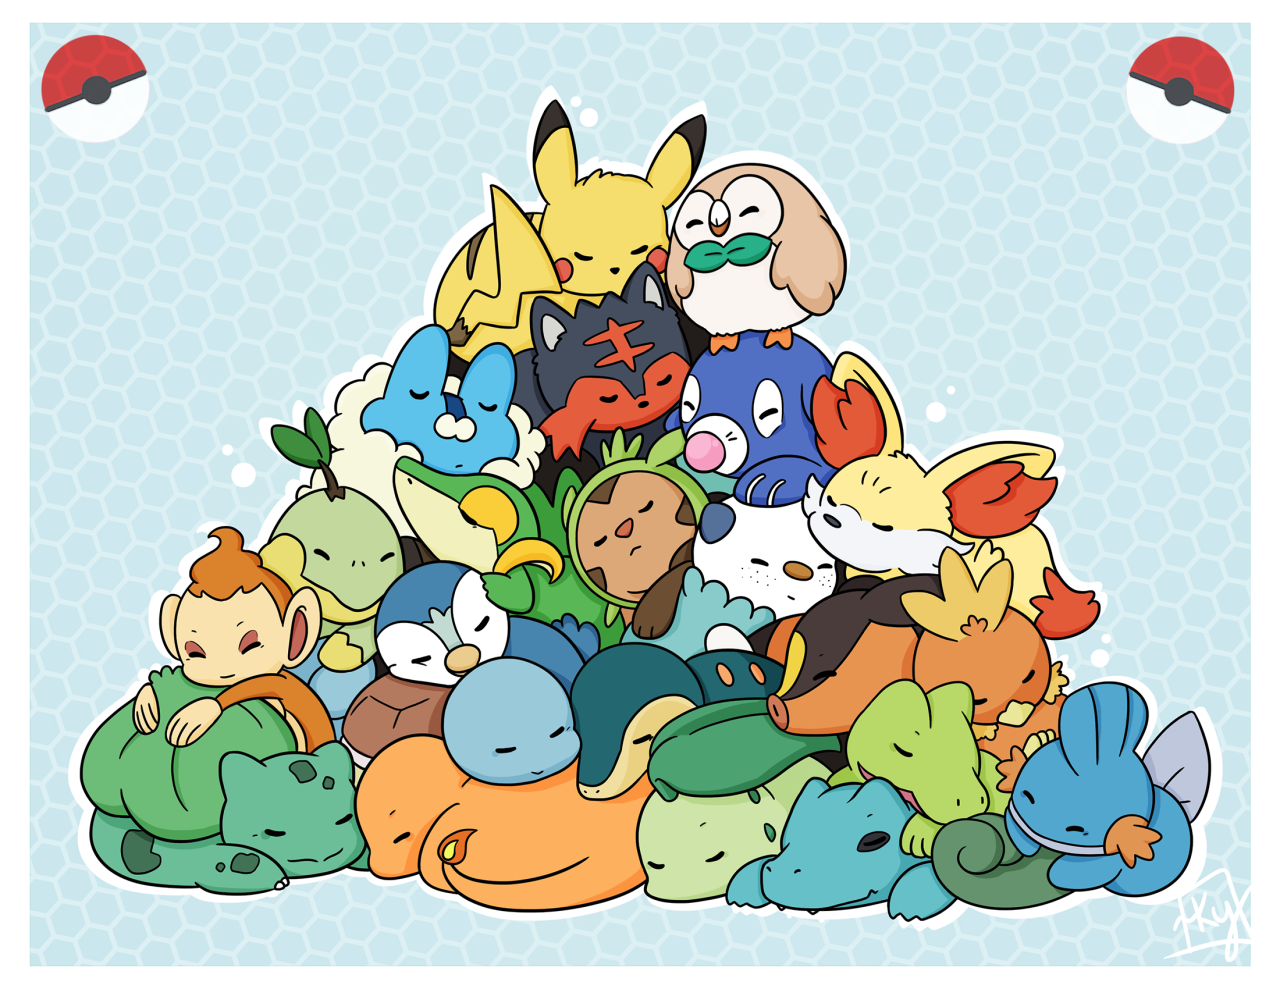 Starters sleeping in a pile.   Pokémon   Know Your Meme